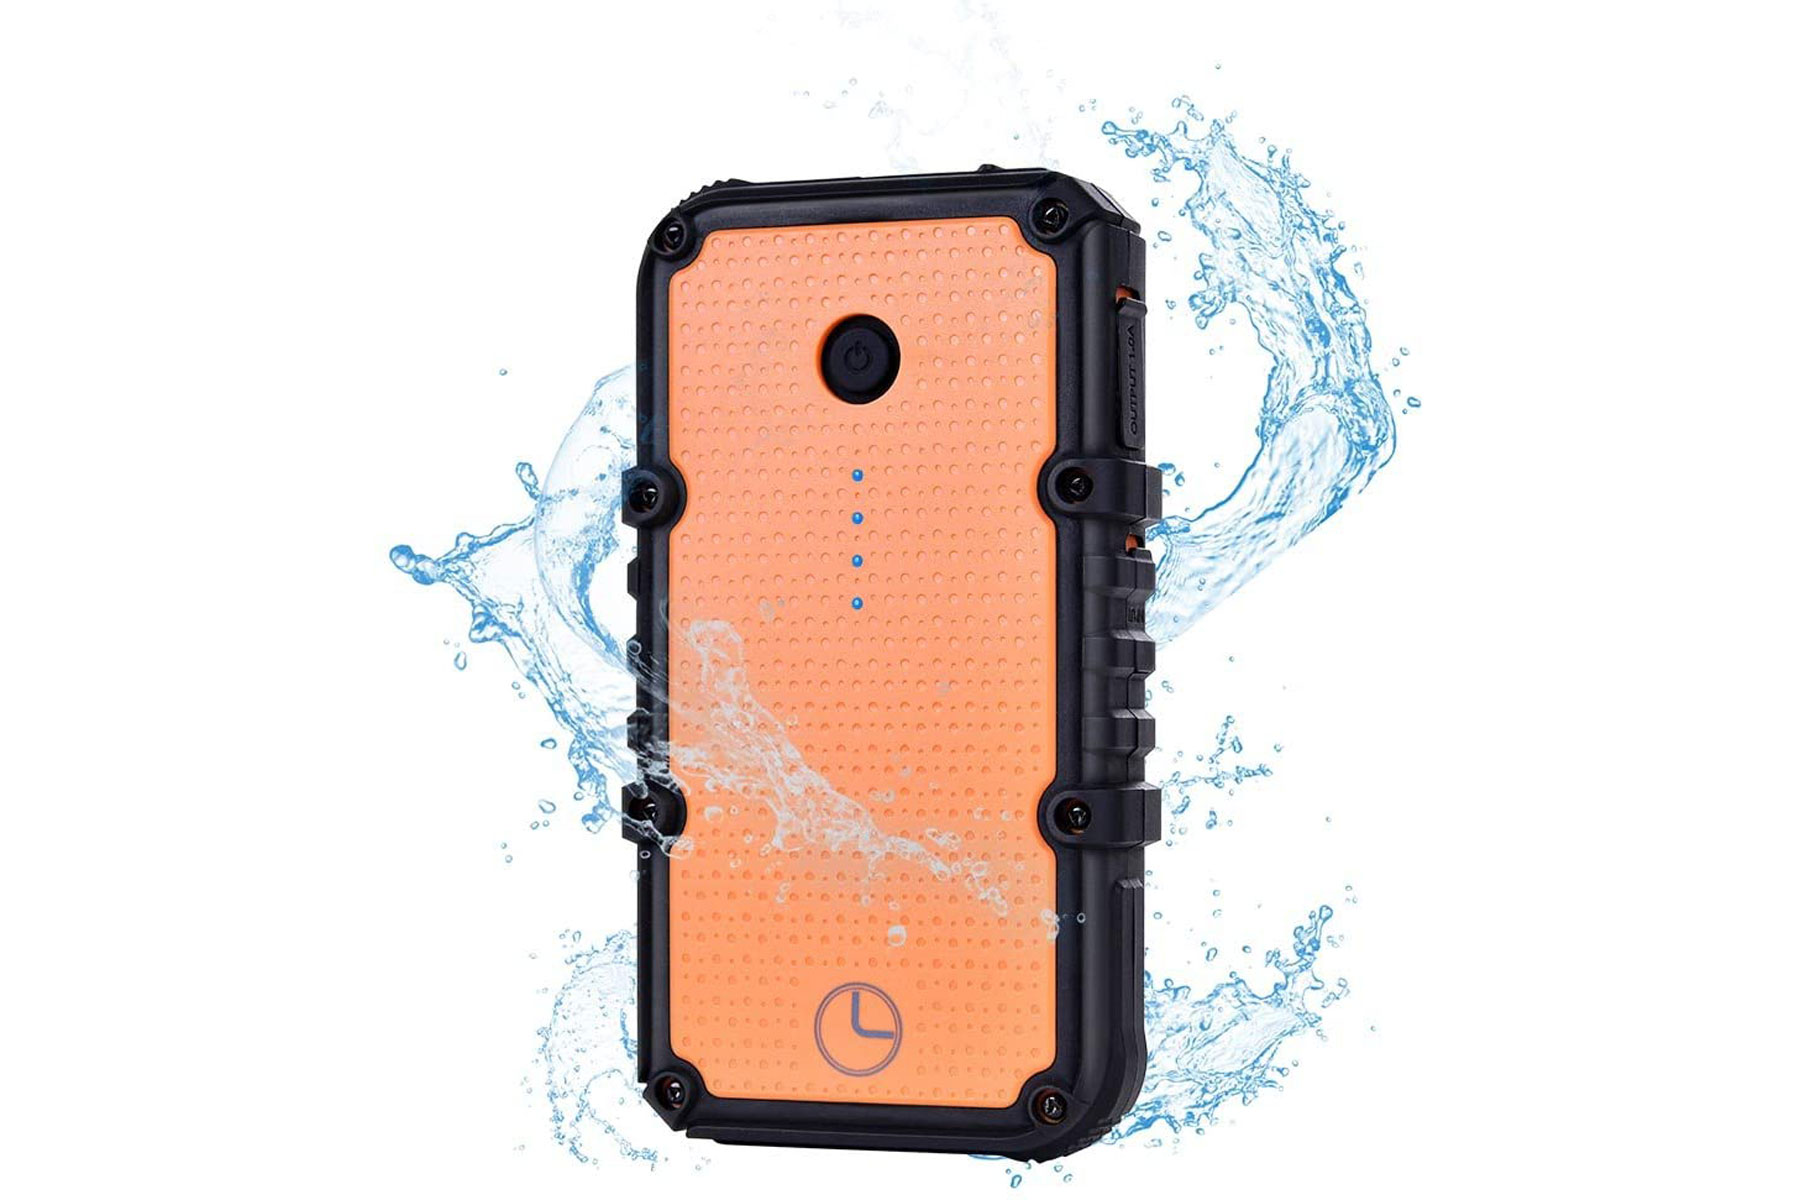 Orange and black waterproof powerbank